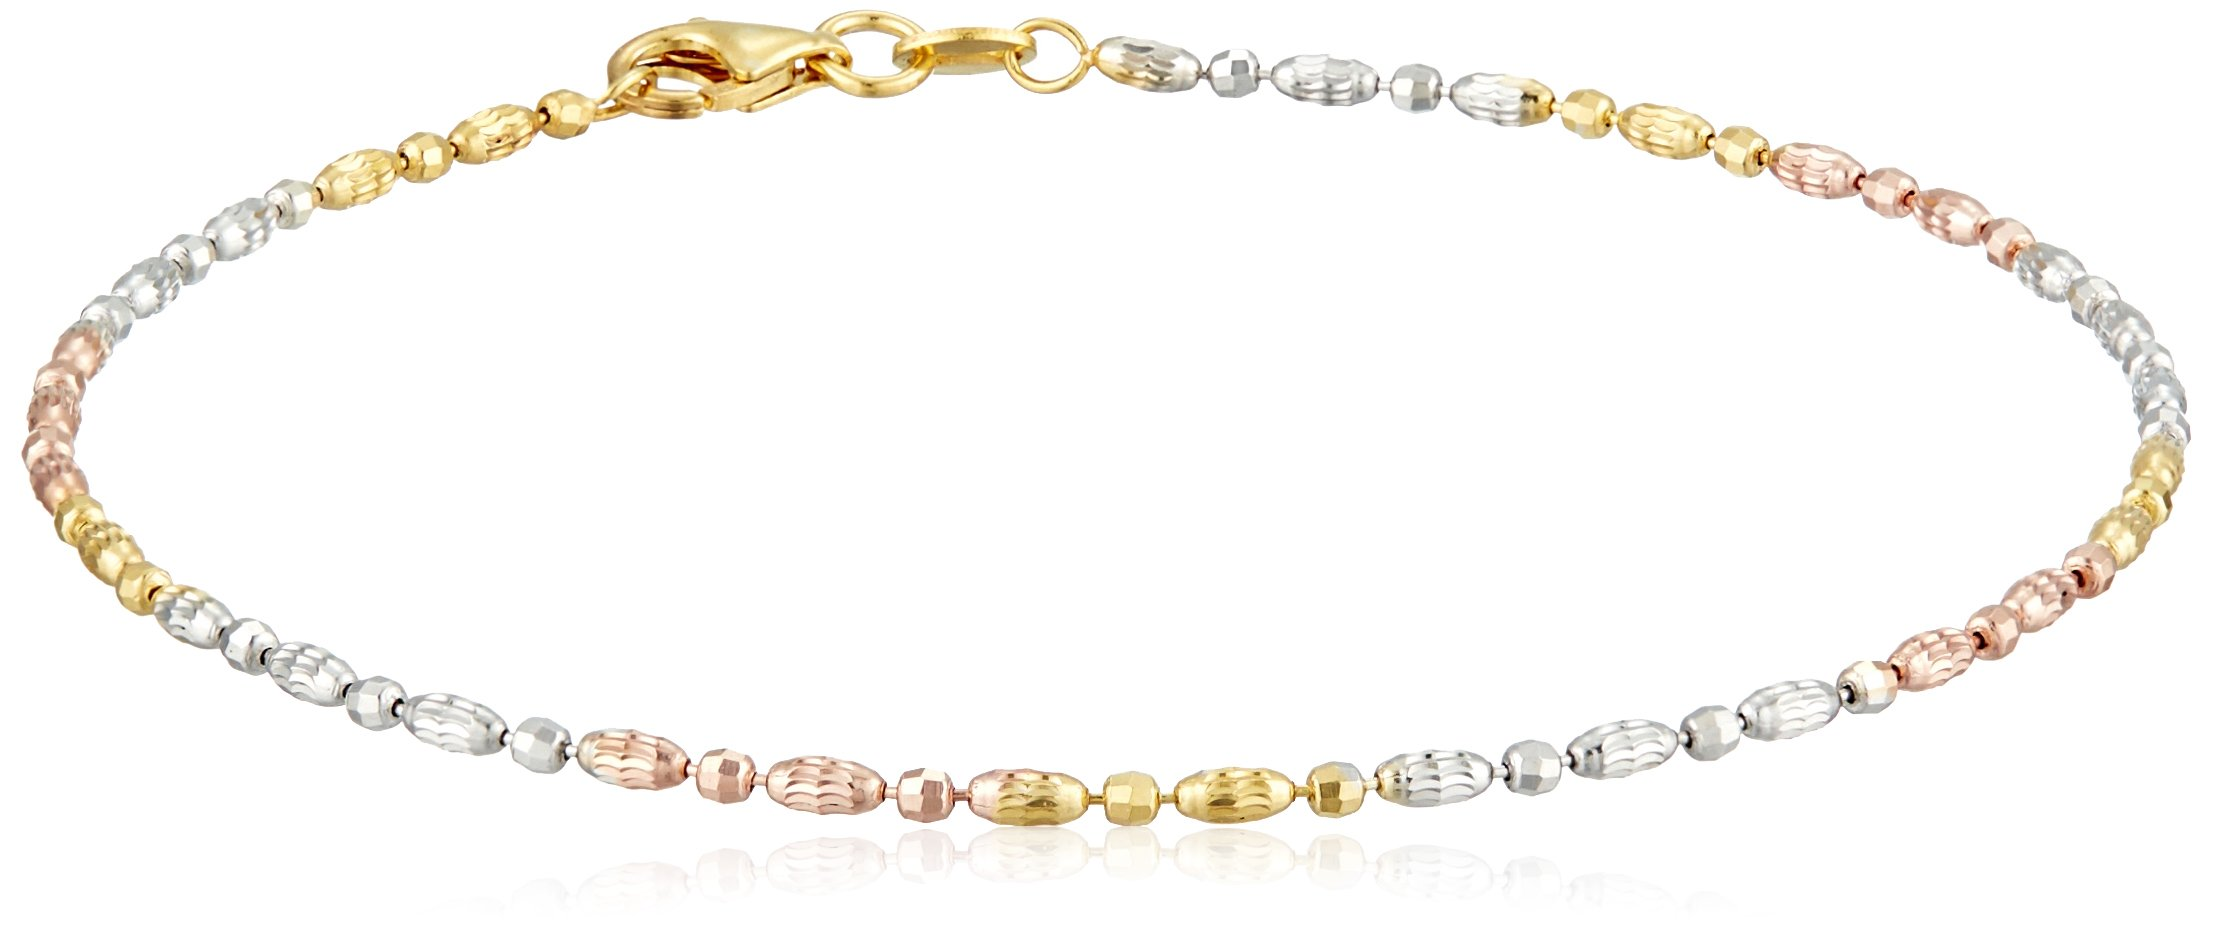 Sterling Silver Italian Tri-Color Diamond Cut Oval and Round Beads Mezzaluna Chain Anklet, 10''